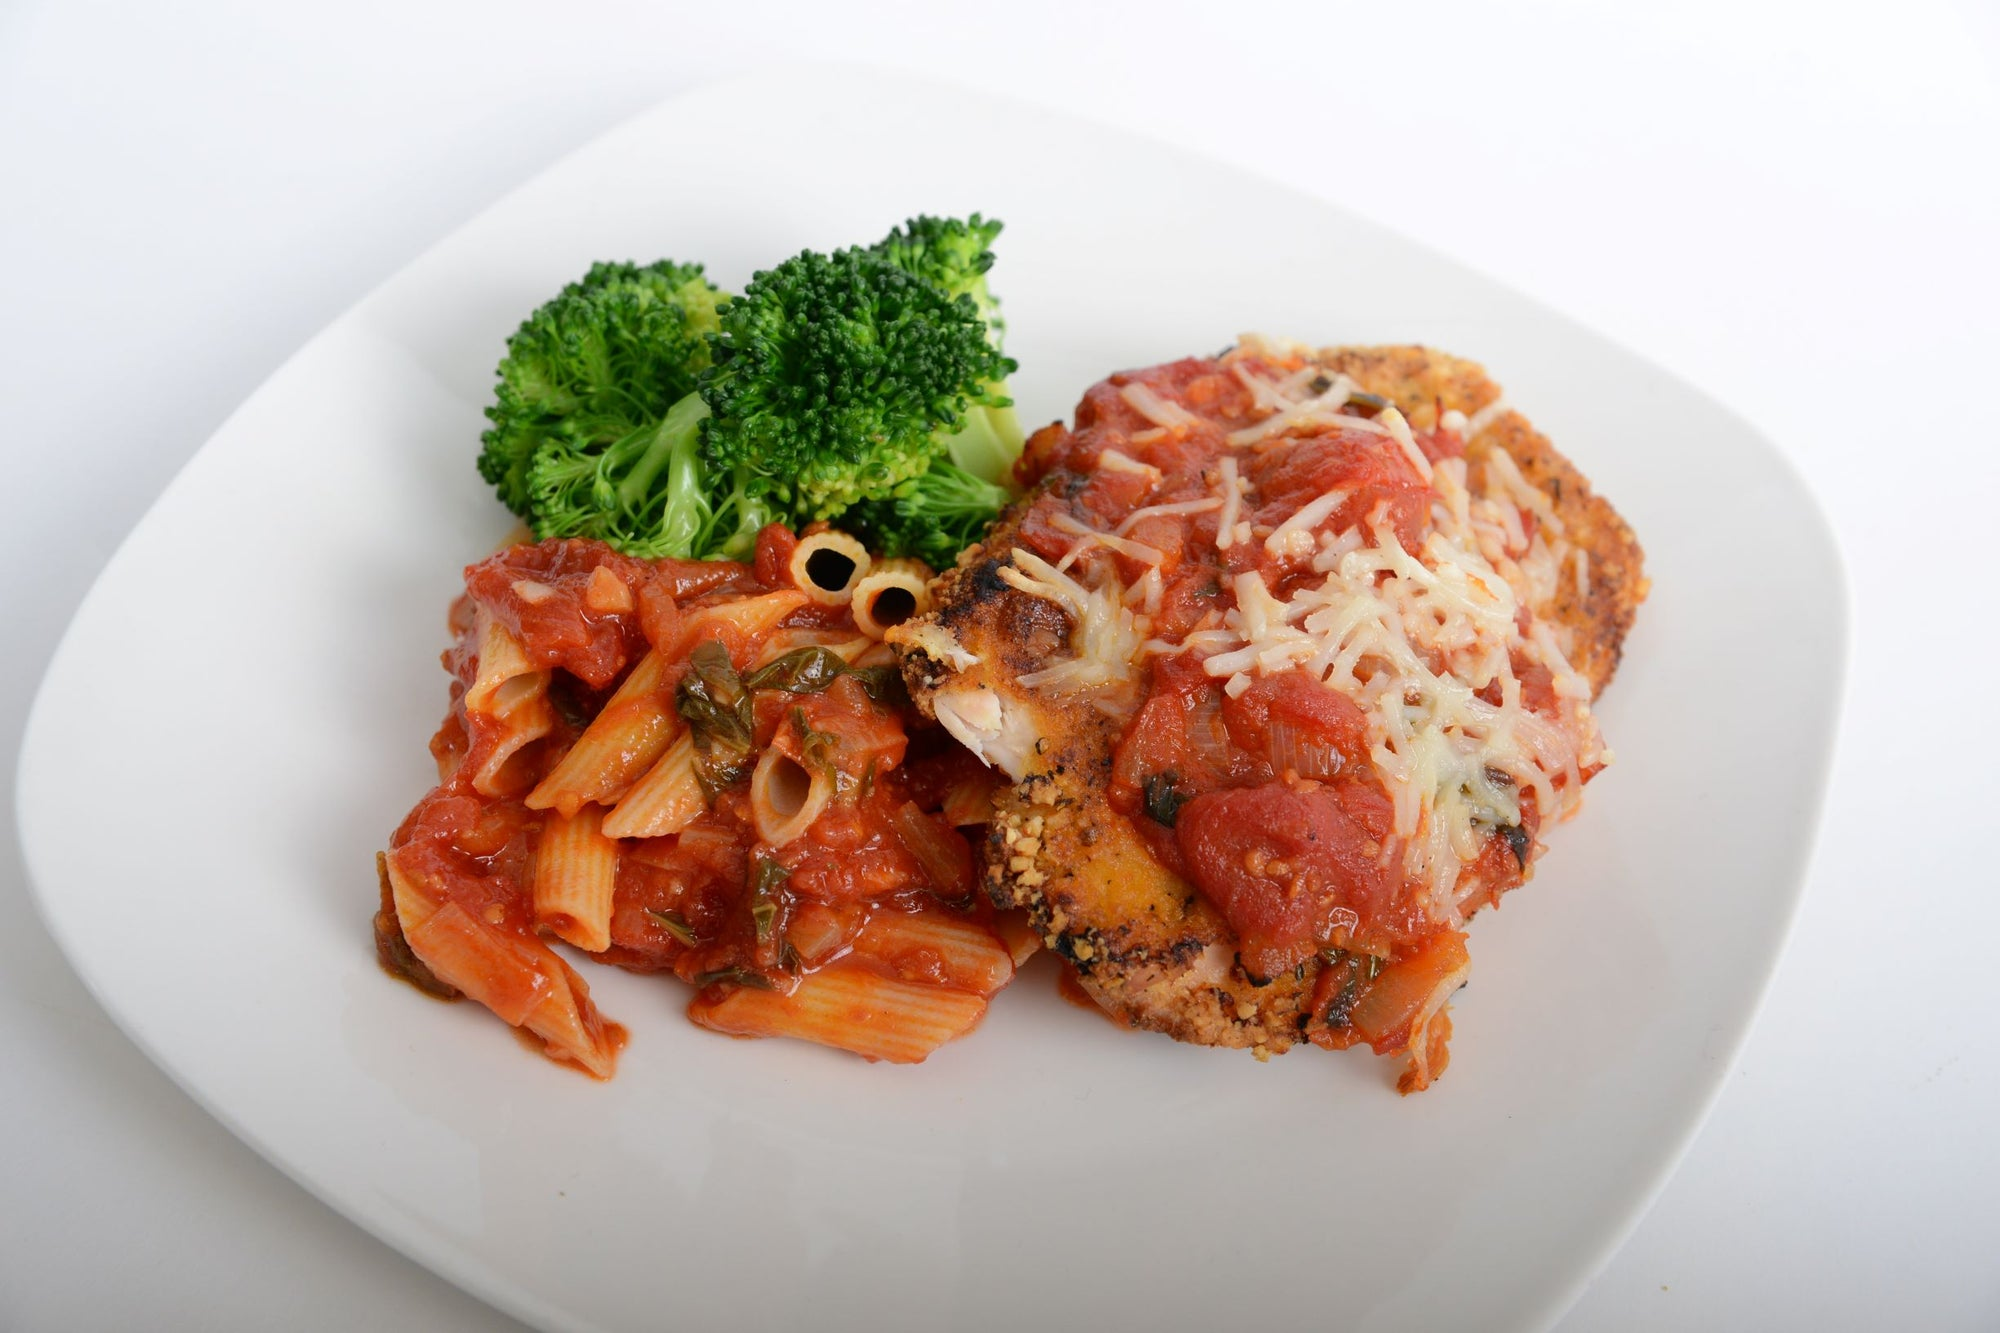 Gluten Free Chicken Parmesan (Thursday 4/9 delivery)